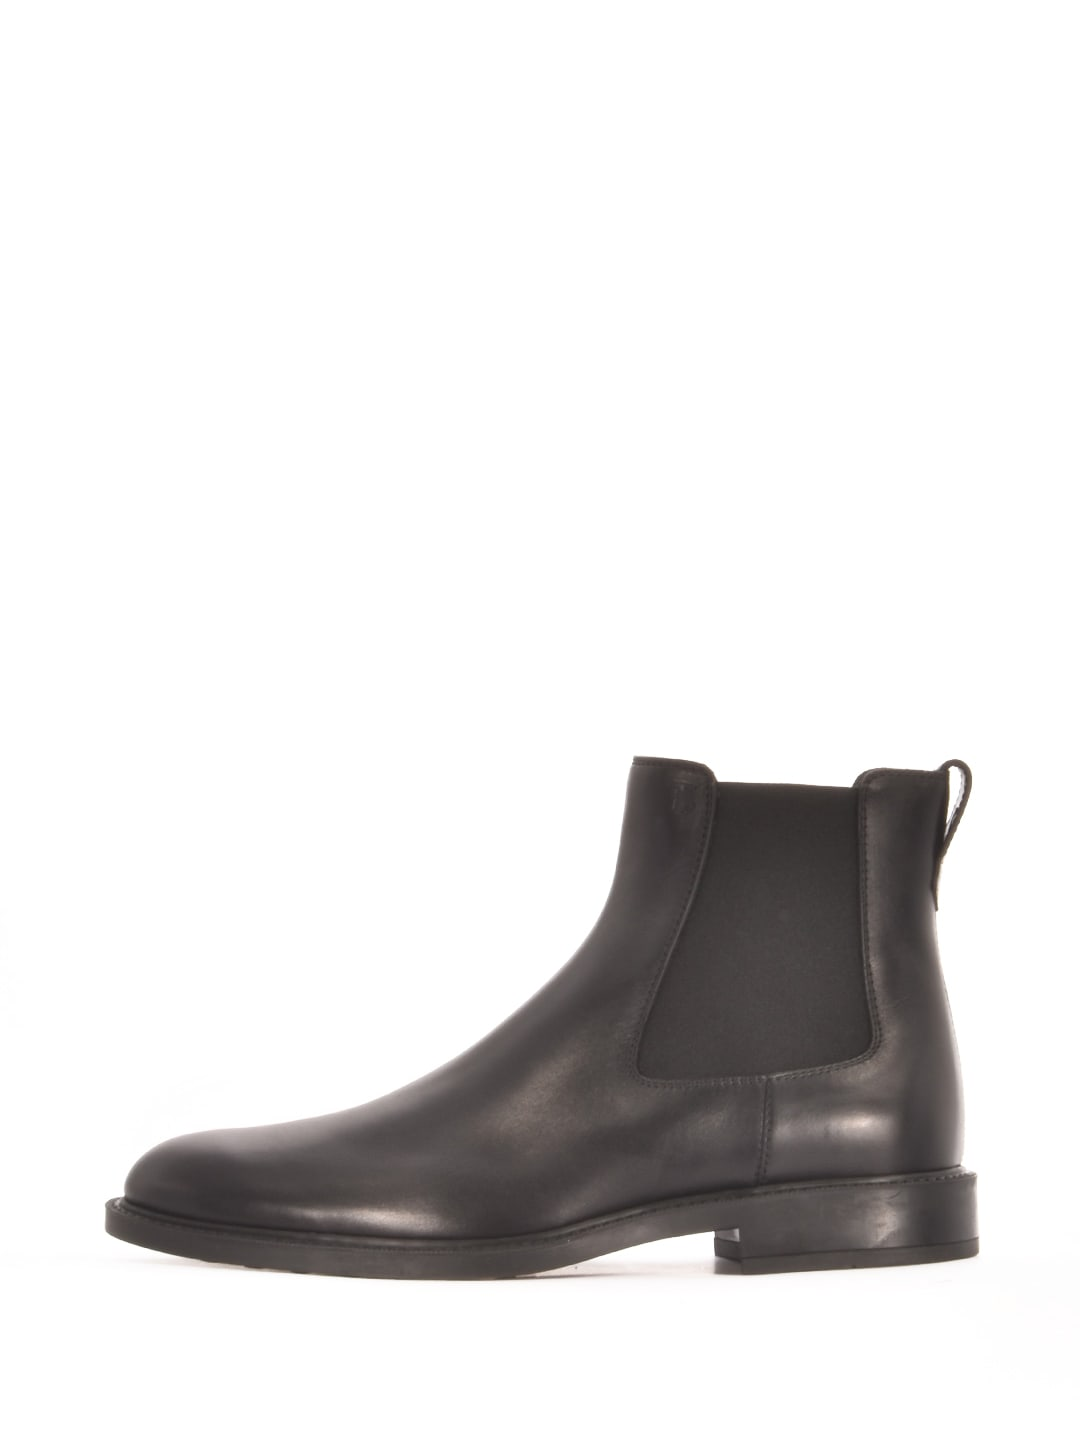 Tods Ankle Boot Black Leather